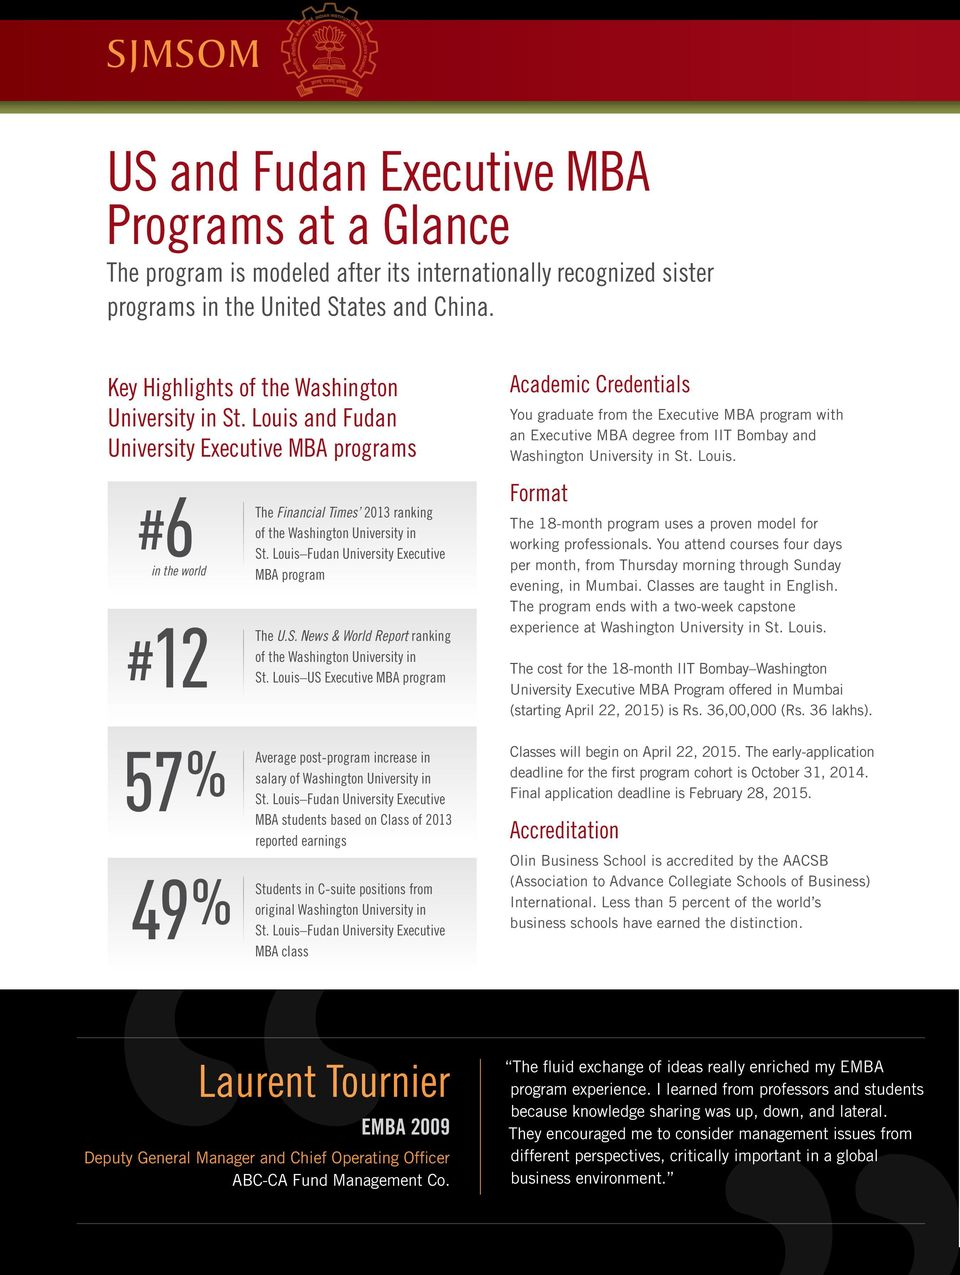 Louis Fudan University Executive MBA program The U.S. News & World Report ranking of the Washington University in St.